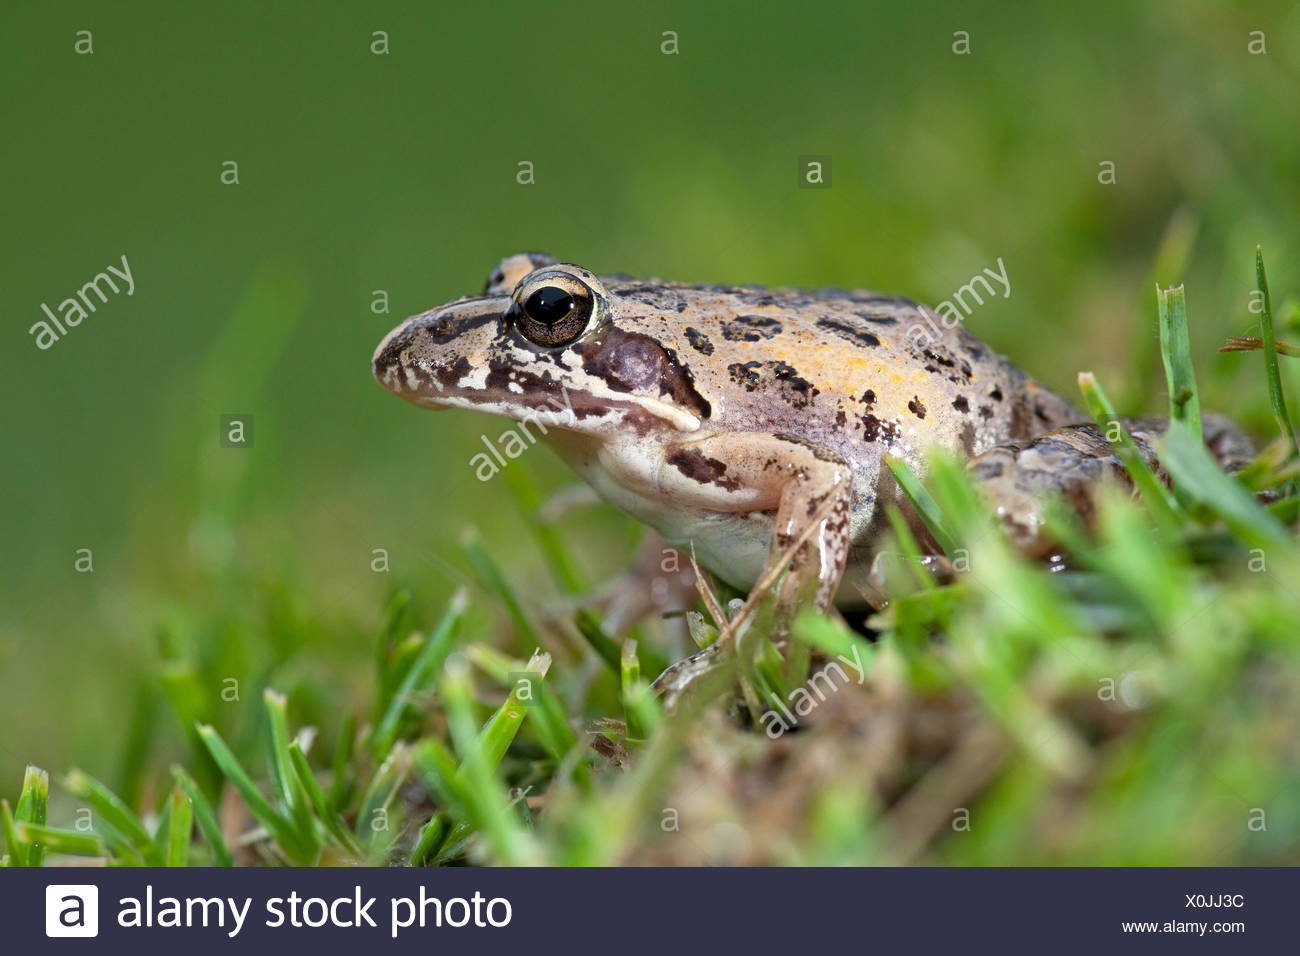 photo of a clicking stream frog on grass - Stock Image